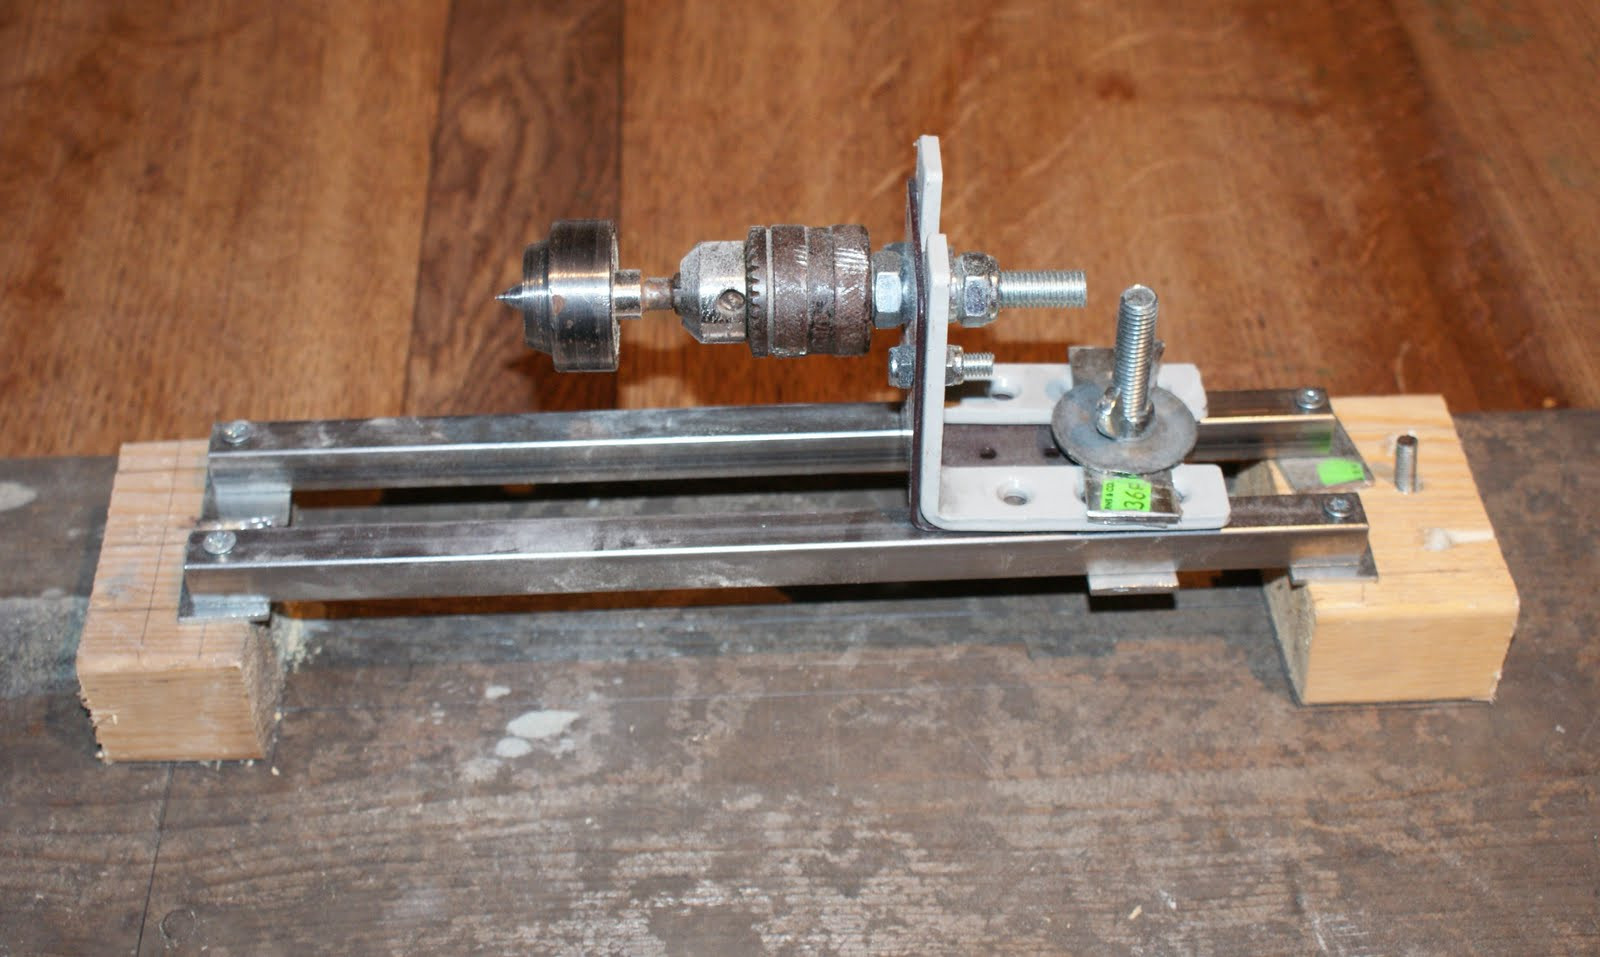 DIY Wood Lathe  Woodwork Wood Lathe Homemade PDF Plans